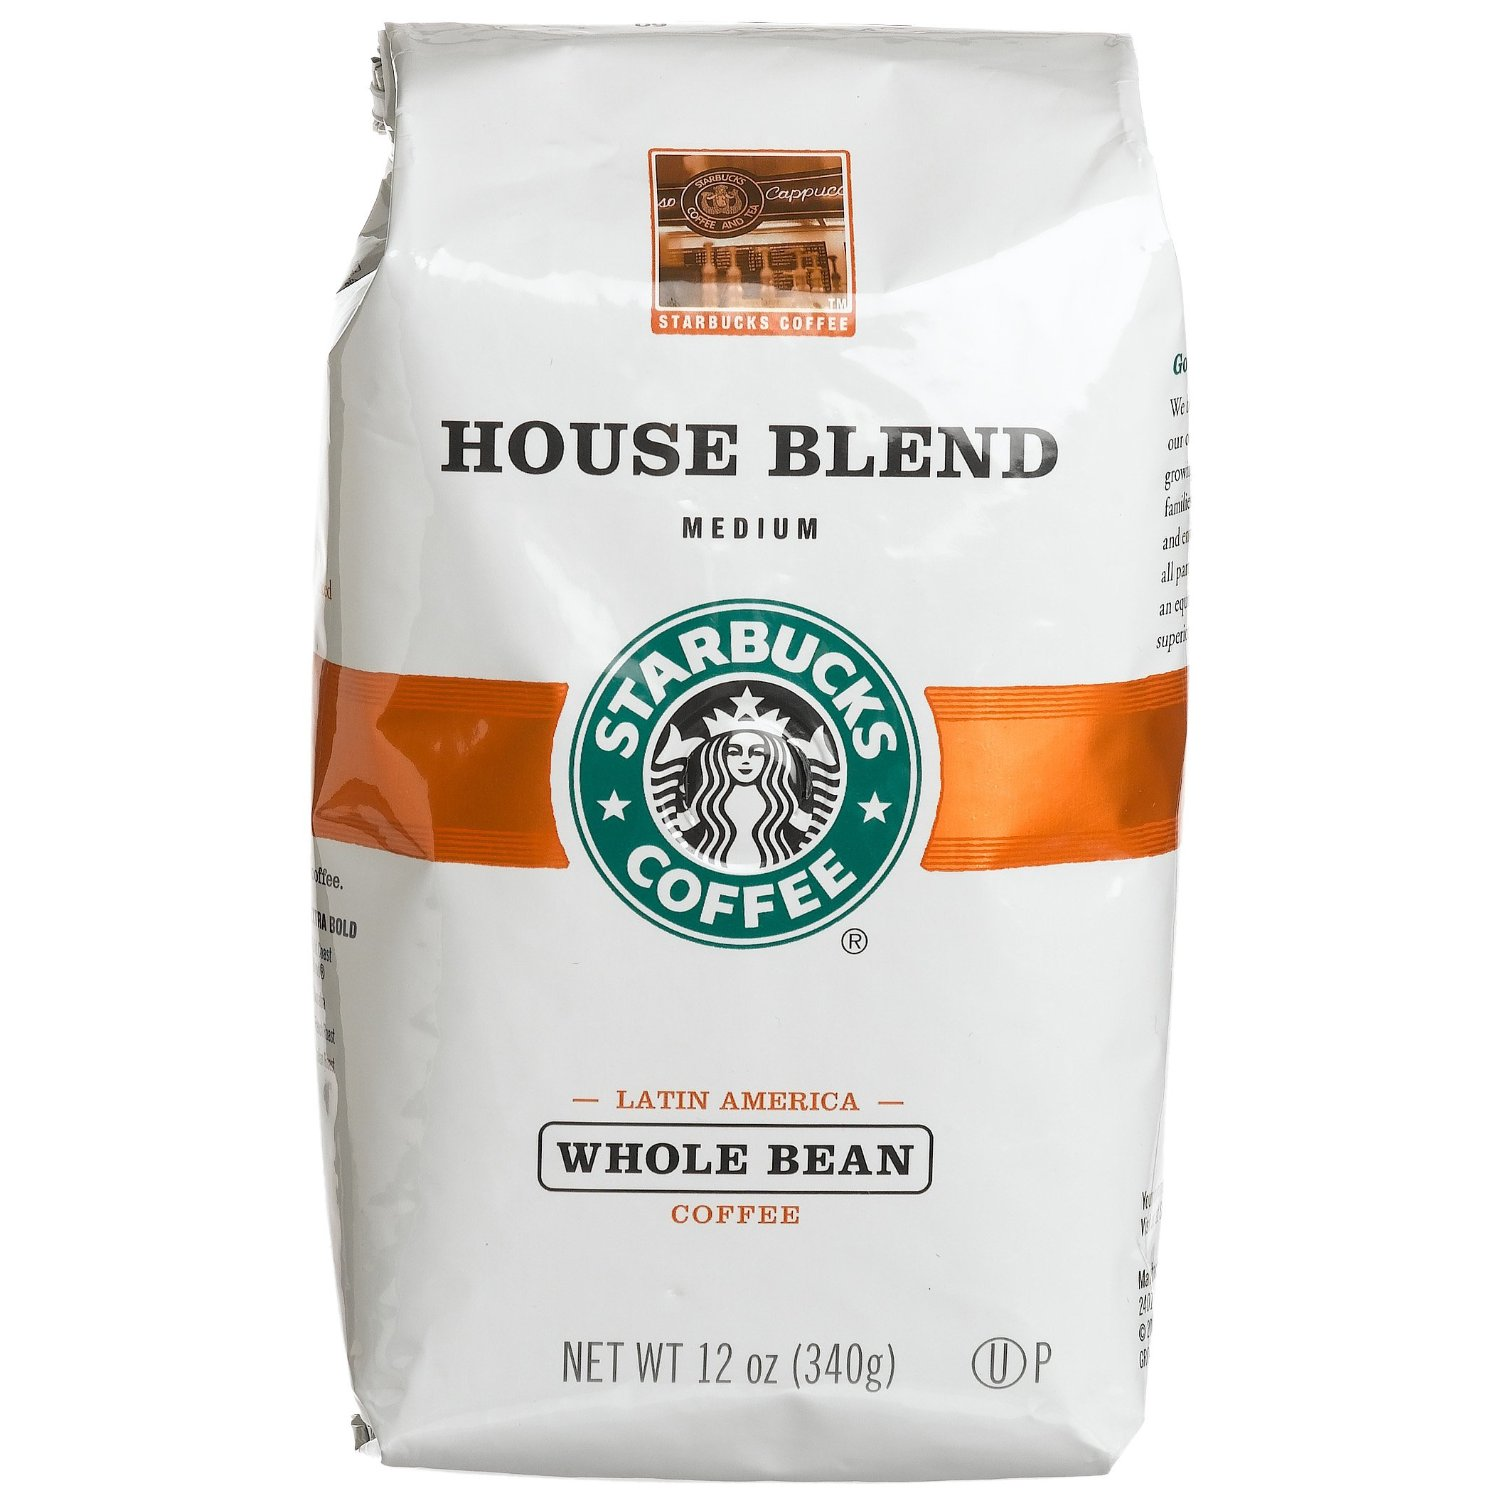 starbucks-coffee-bag-starbucks-house-blend-coffee-whole-bean-12ounce-bags